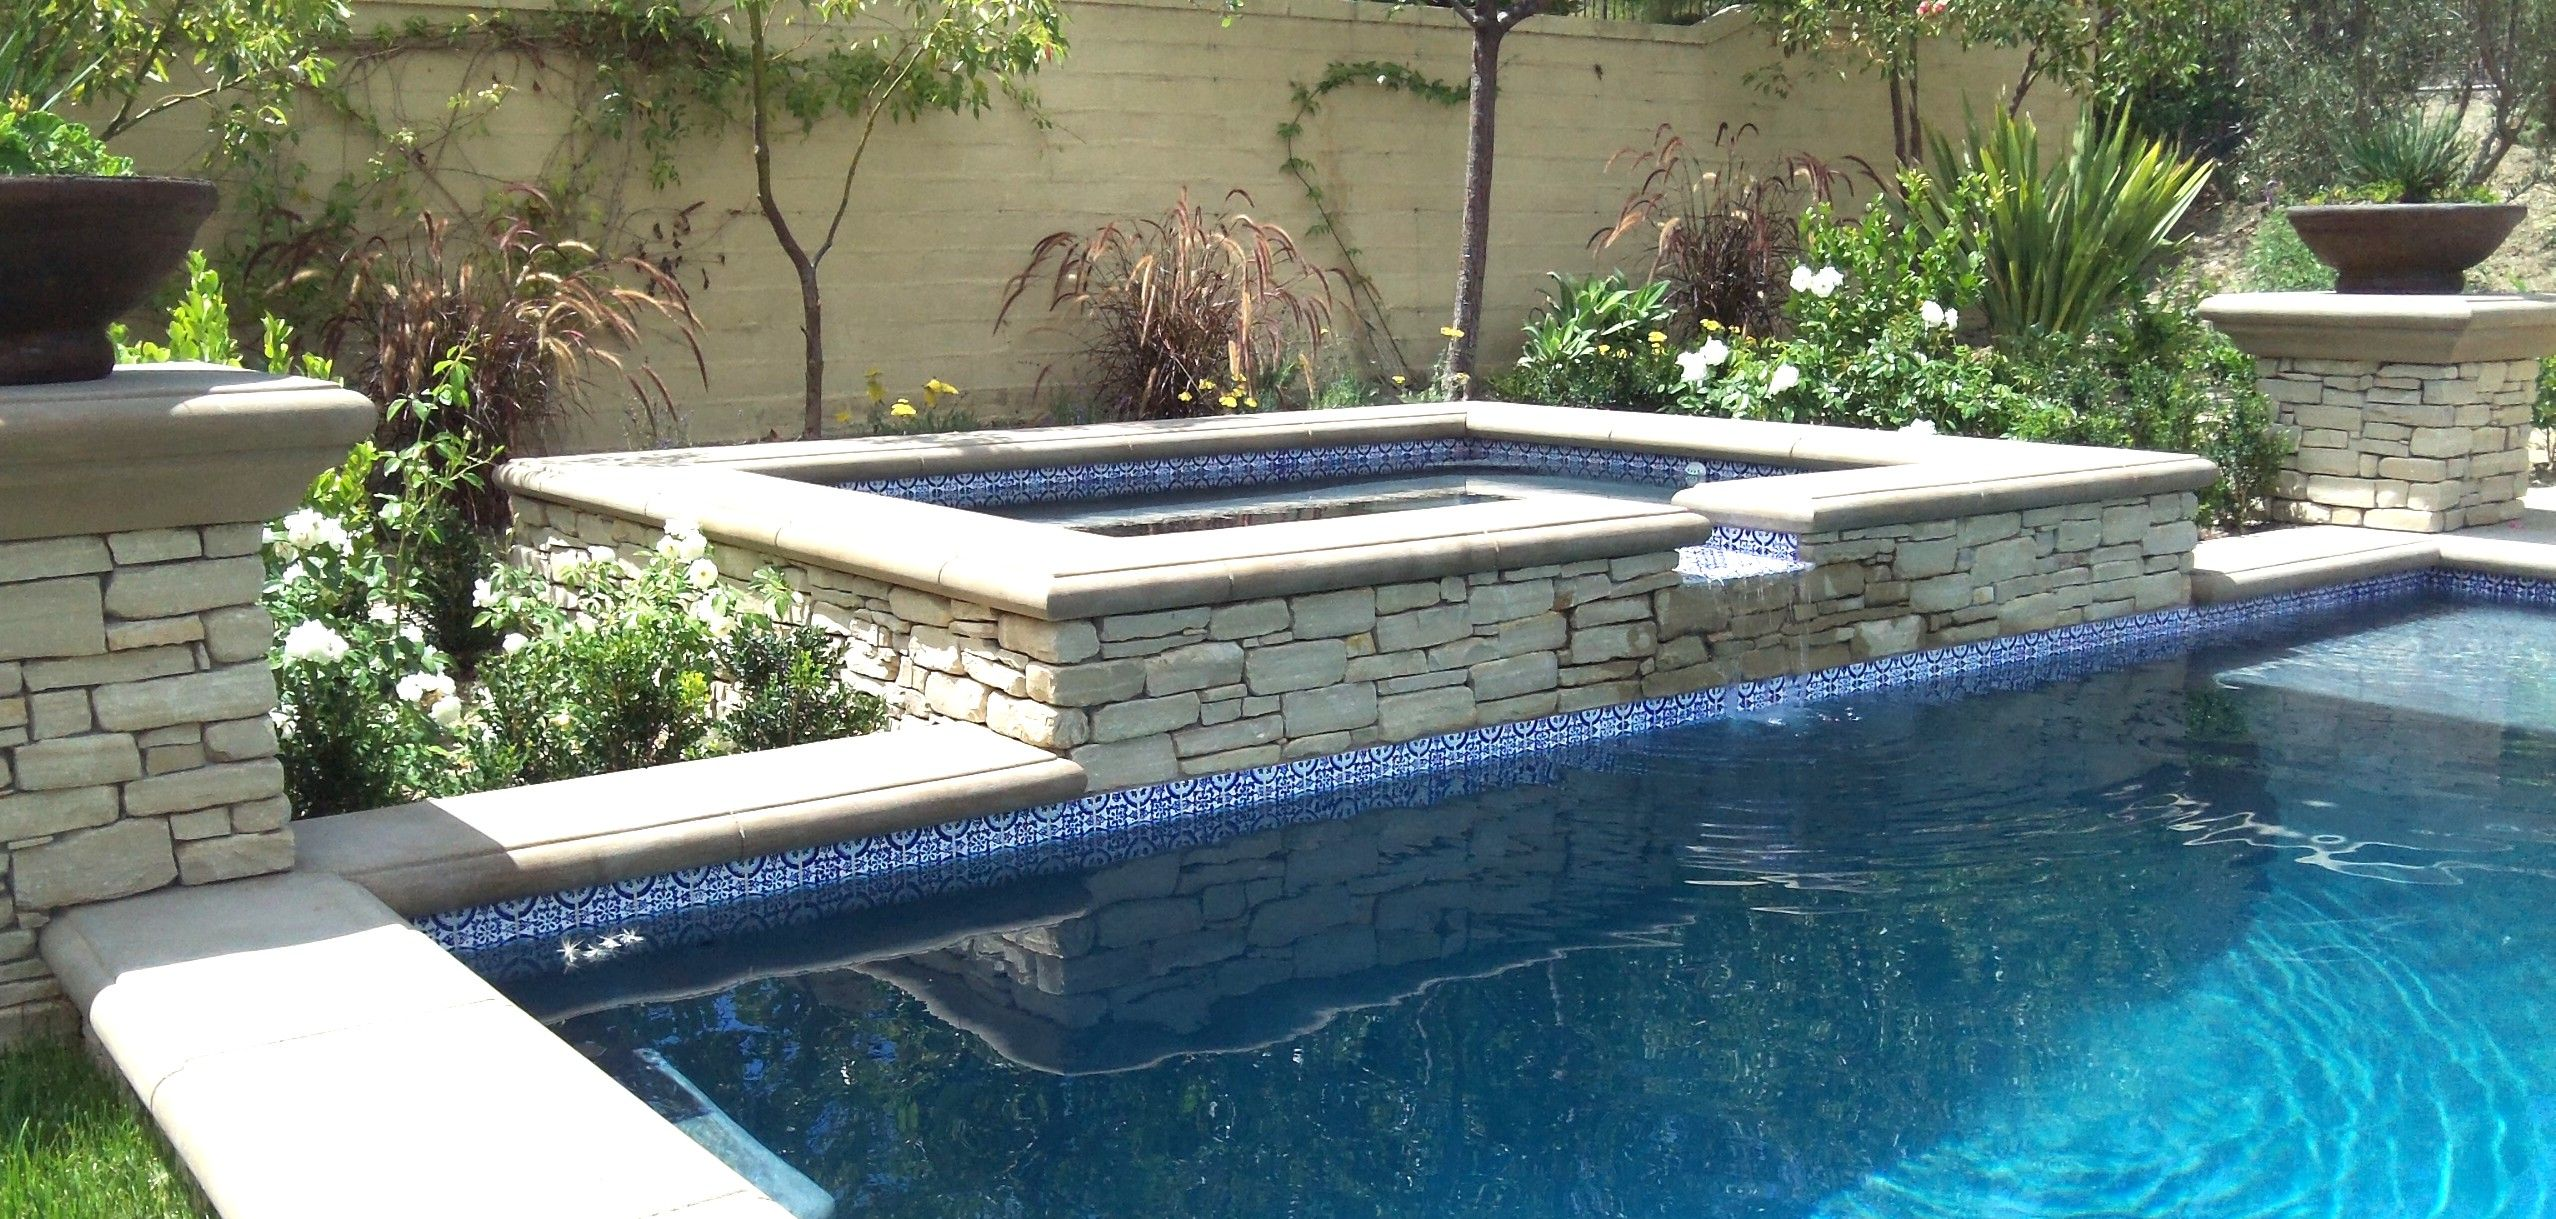 pool tile designs pool water fountain design ideas small swimming pool fountain design - Pool Designs Ideas